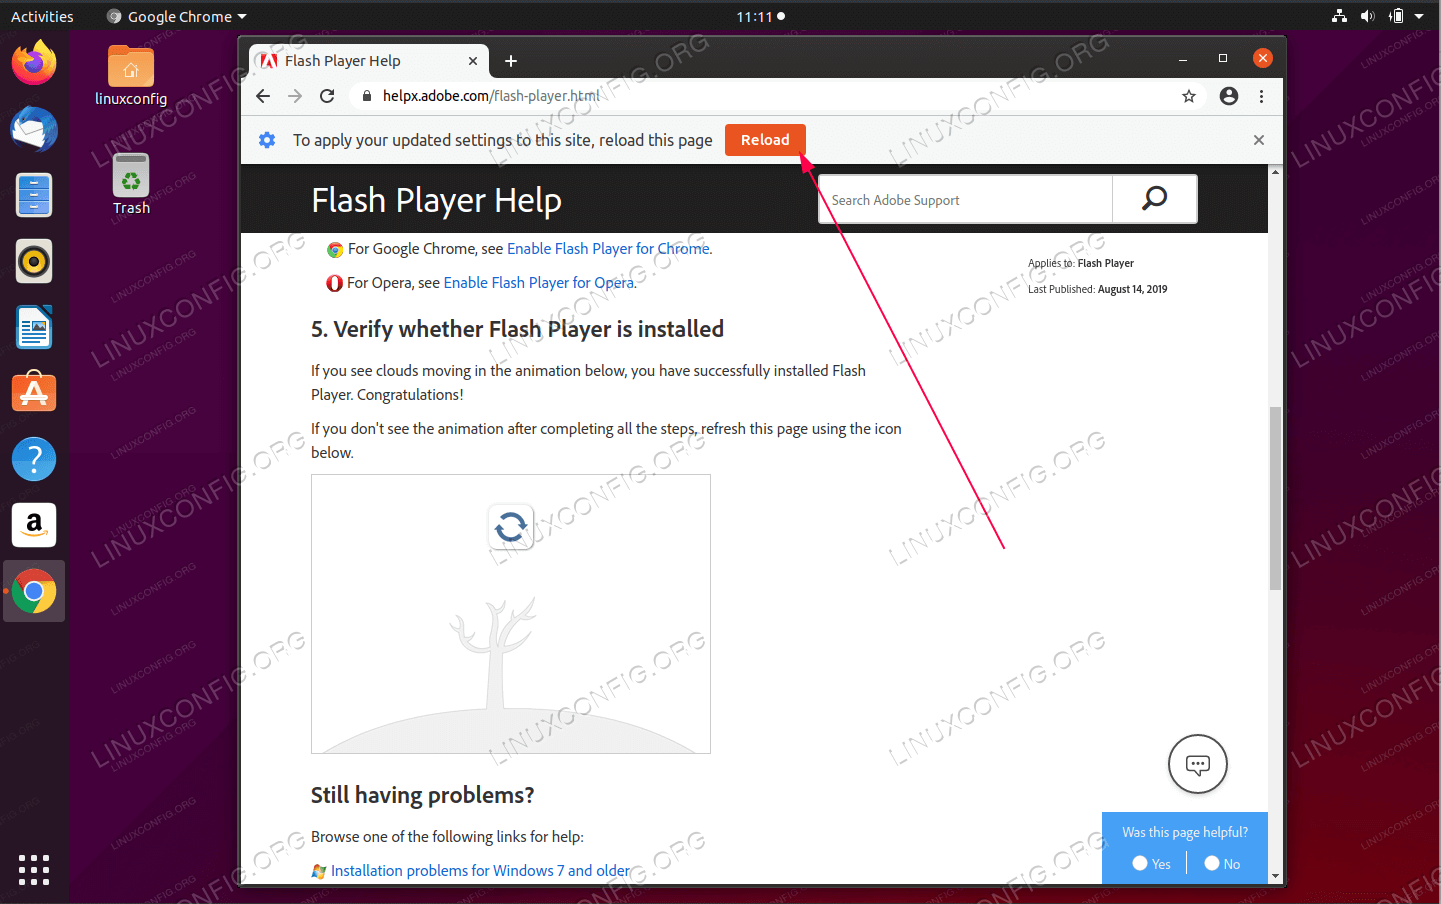 Reload the page to activate Flash Player